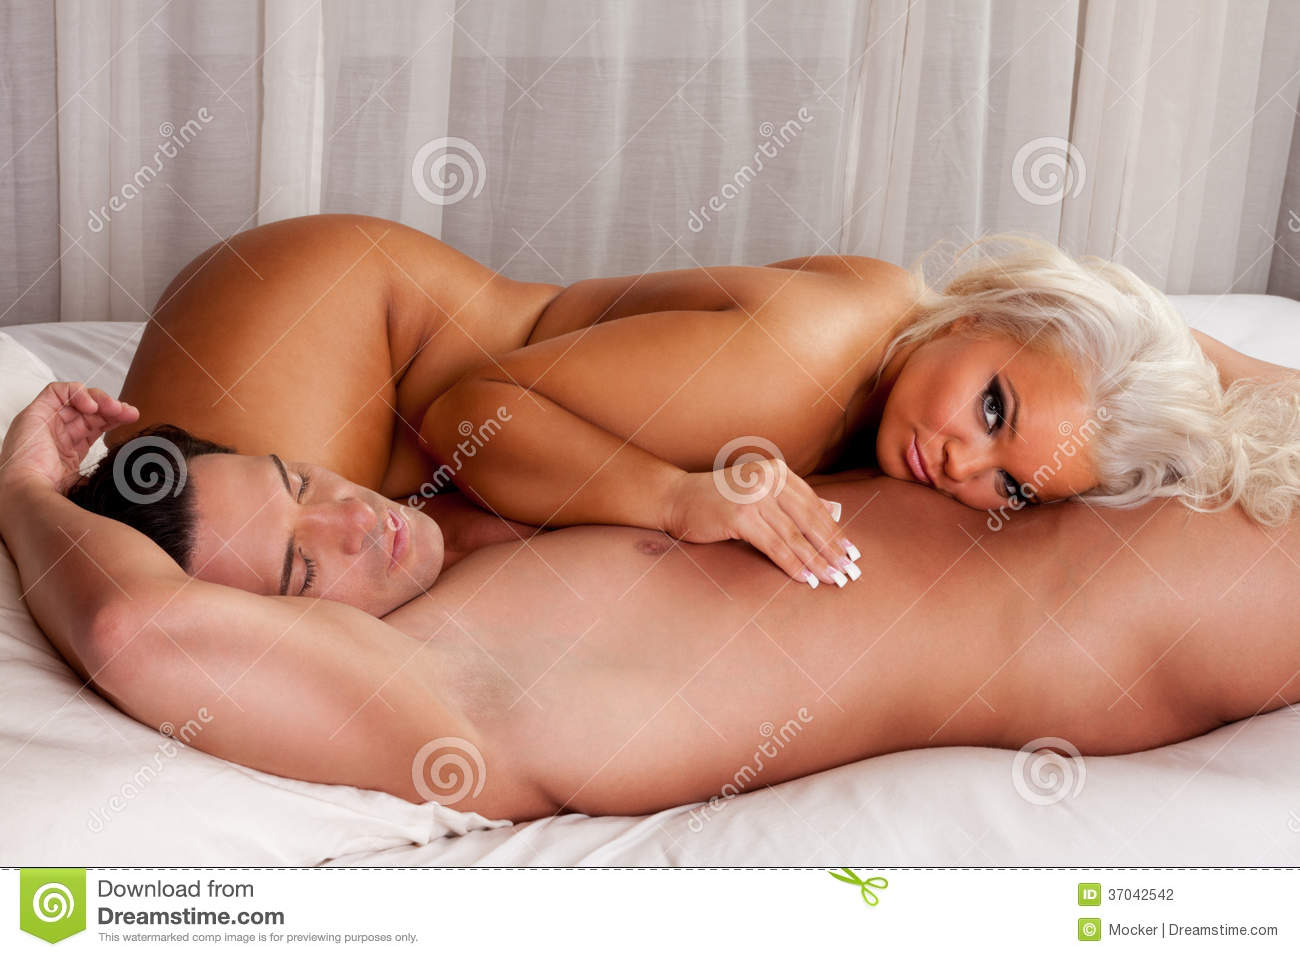 Would Pics of young naked teens asleep in bed idea has